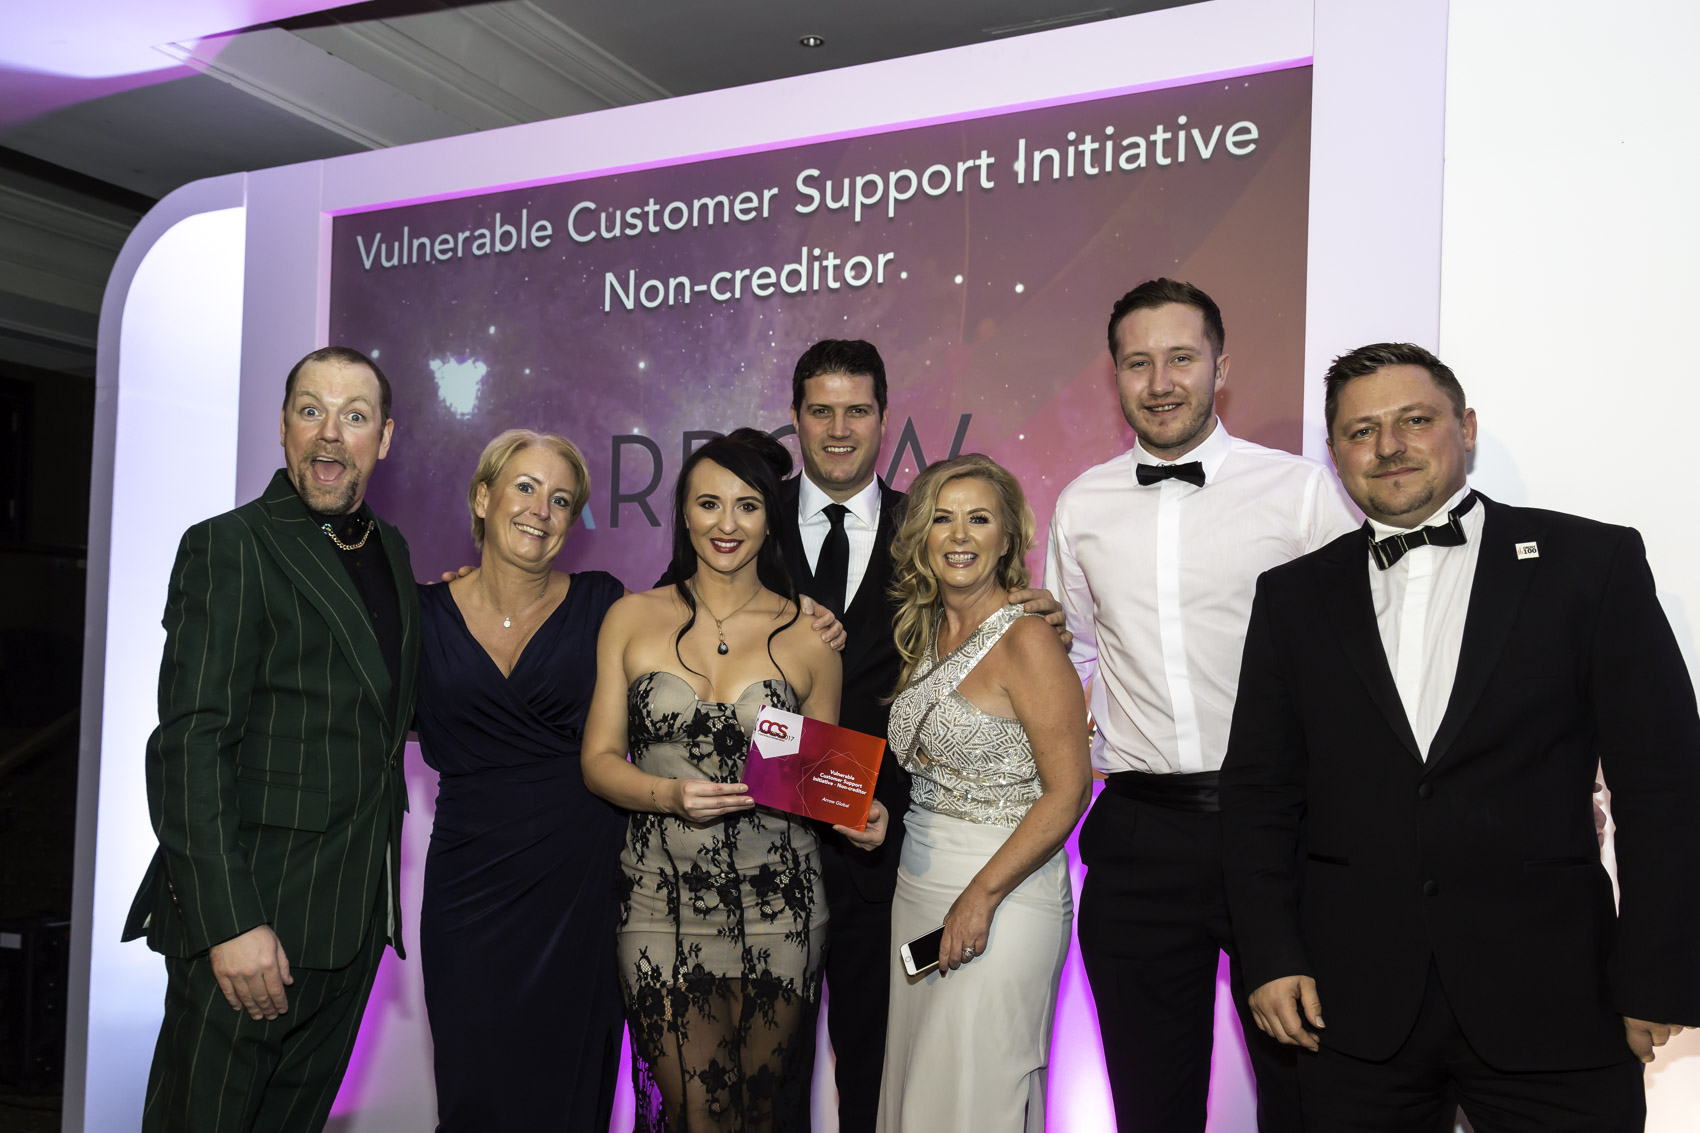 Winners CCS 2017 - 13 Vulnerable Customer Support Initiative - Non-creditor